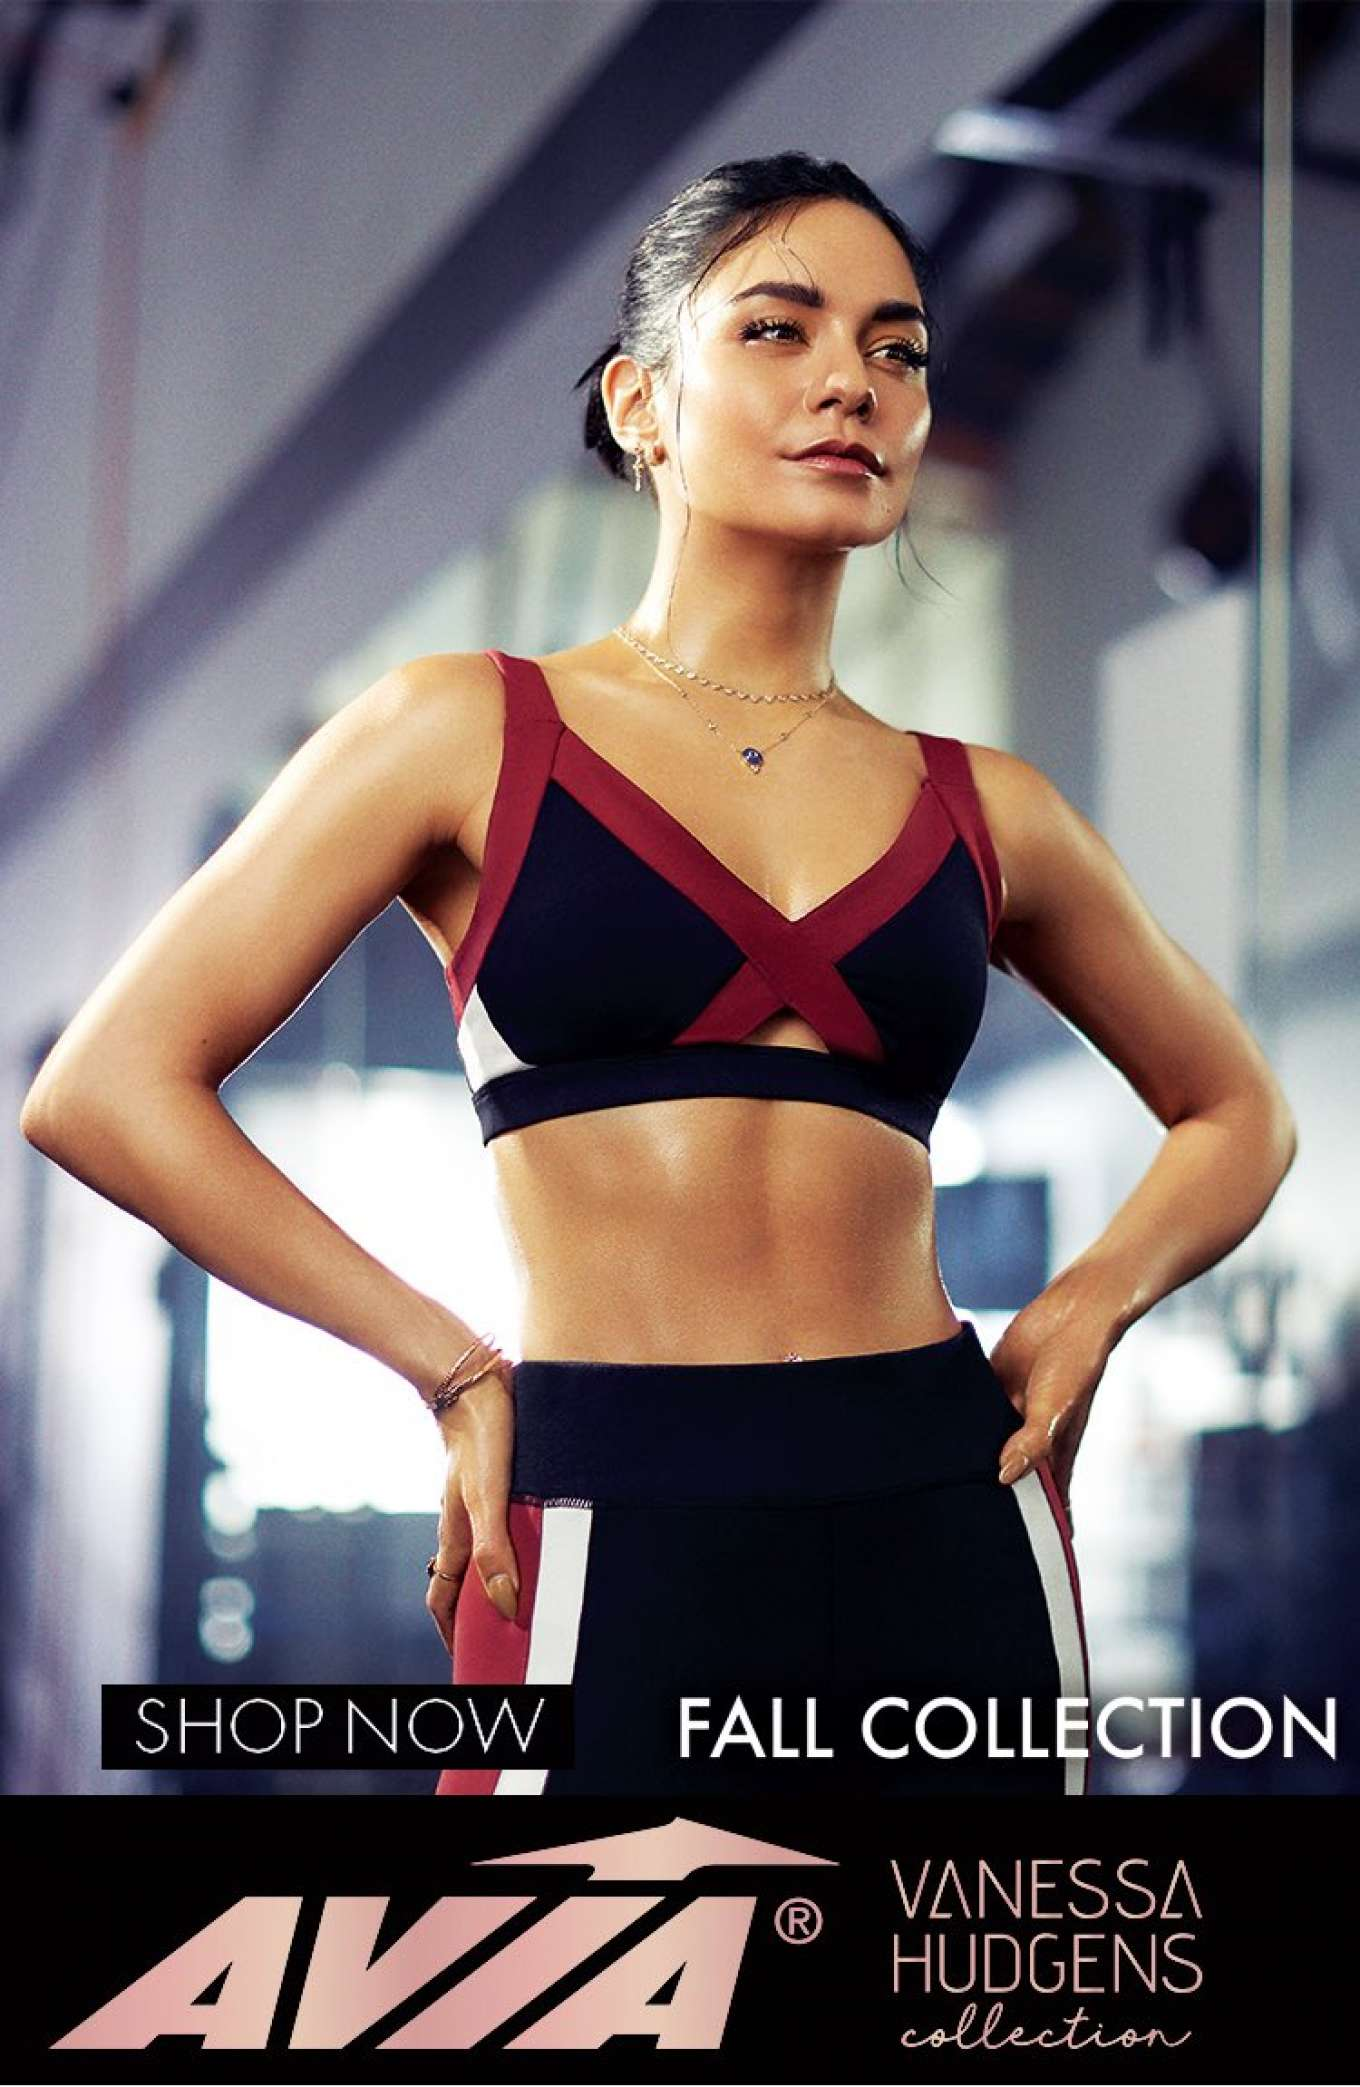 Vanessa Hudgens 2019 : Vanessa Hudgens – Vanessa Hudgens Collection x Avia Fitness 2019-04